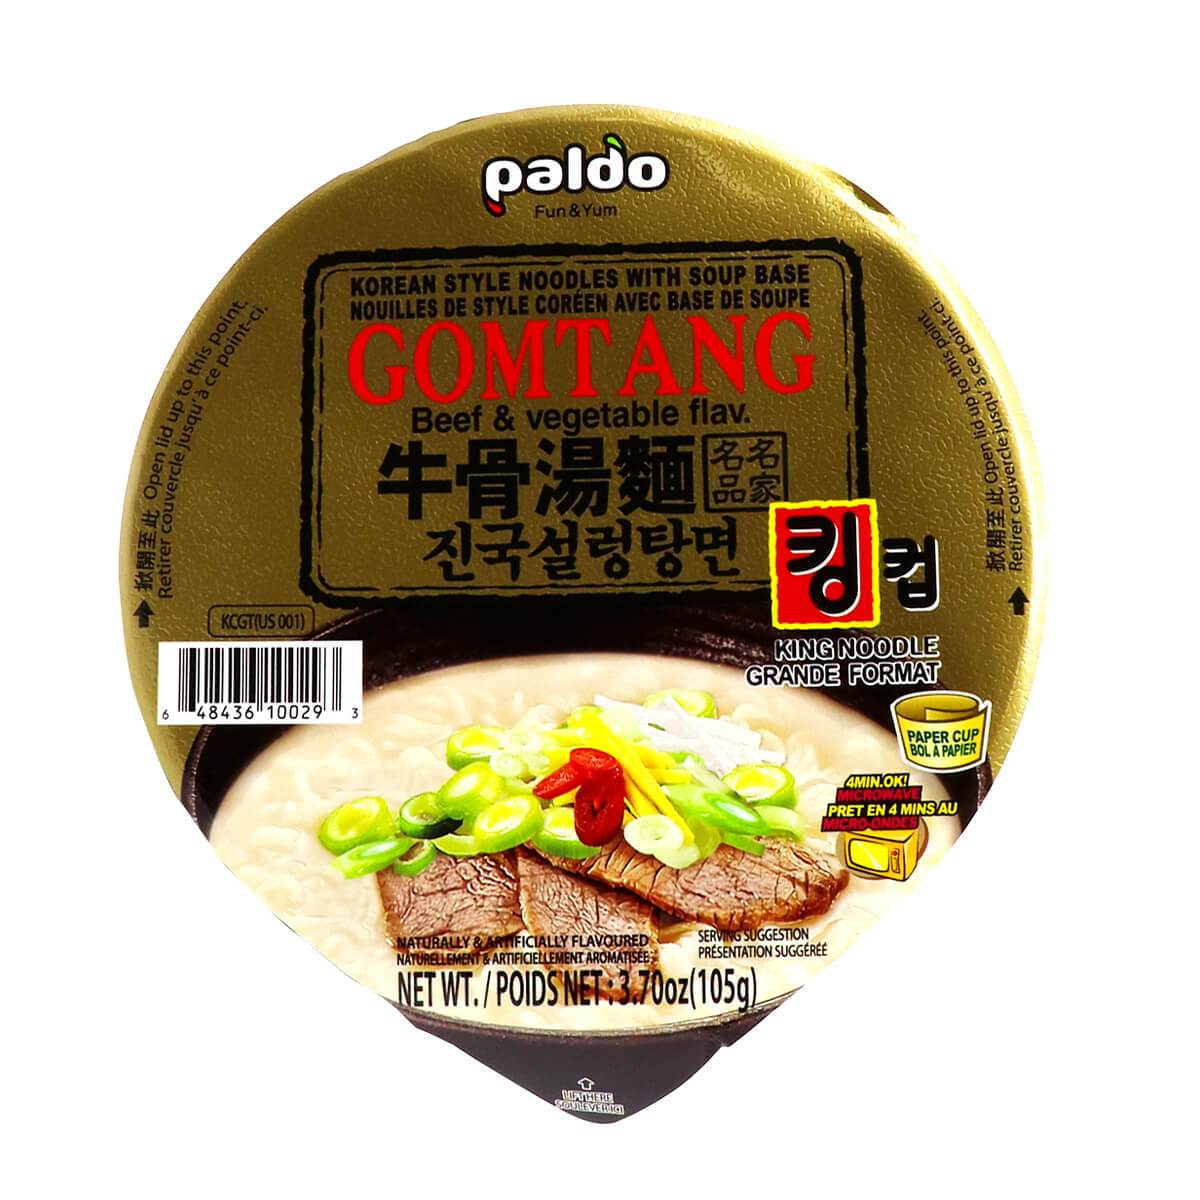 Paldo Gomtang King Cup Korean Soup Ramen Noodles Beef and Vegetable Flavored 3.7 Oz (105 g)